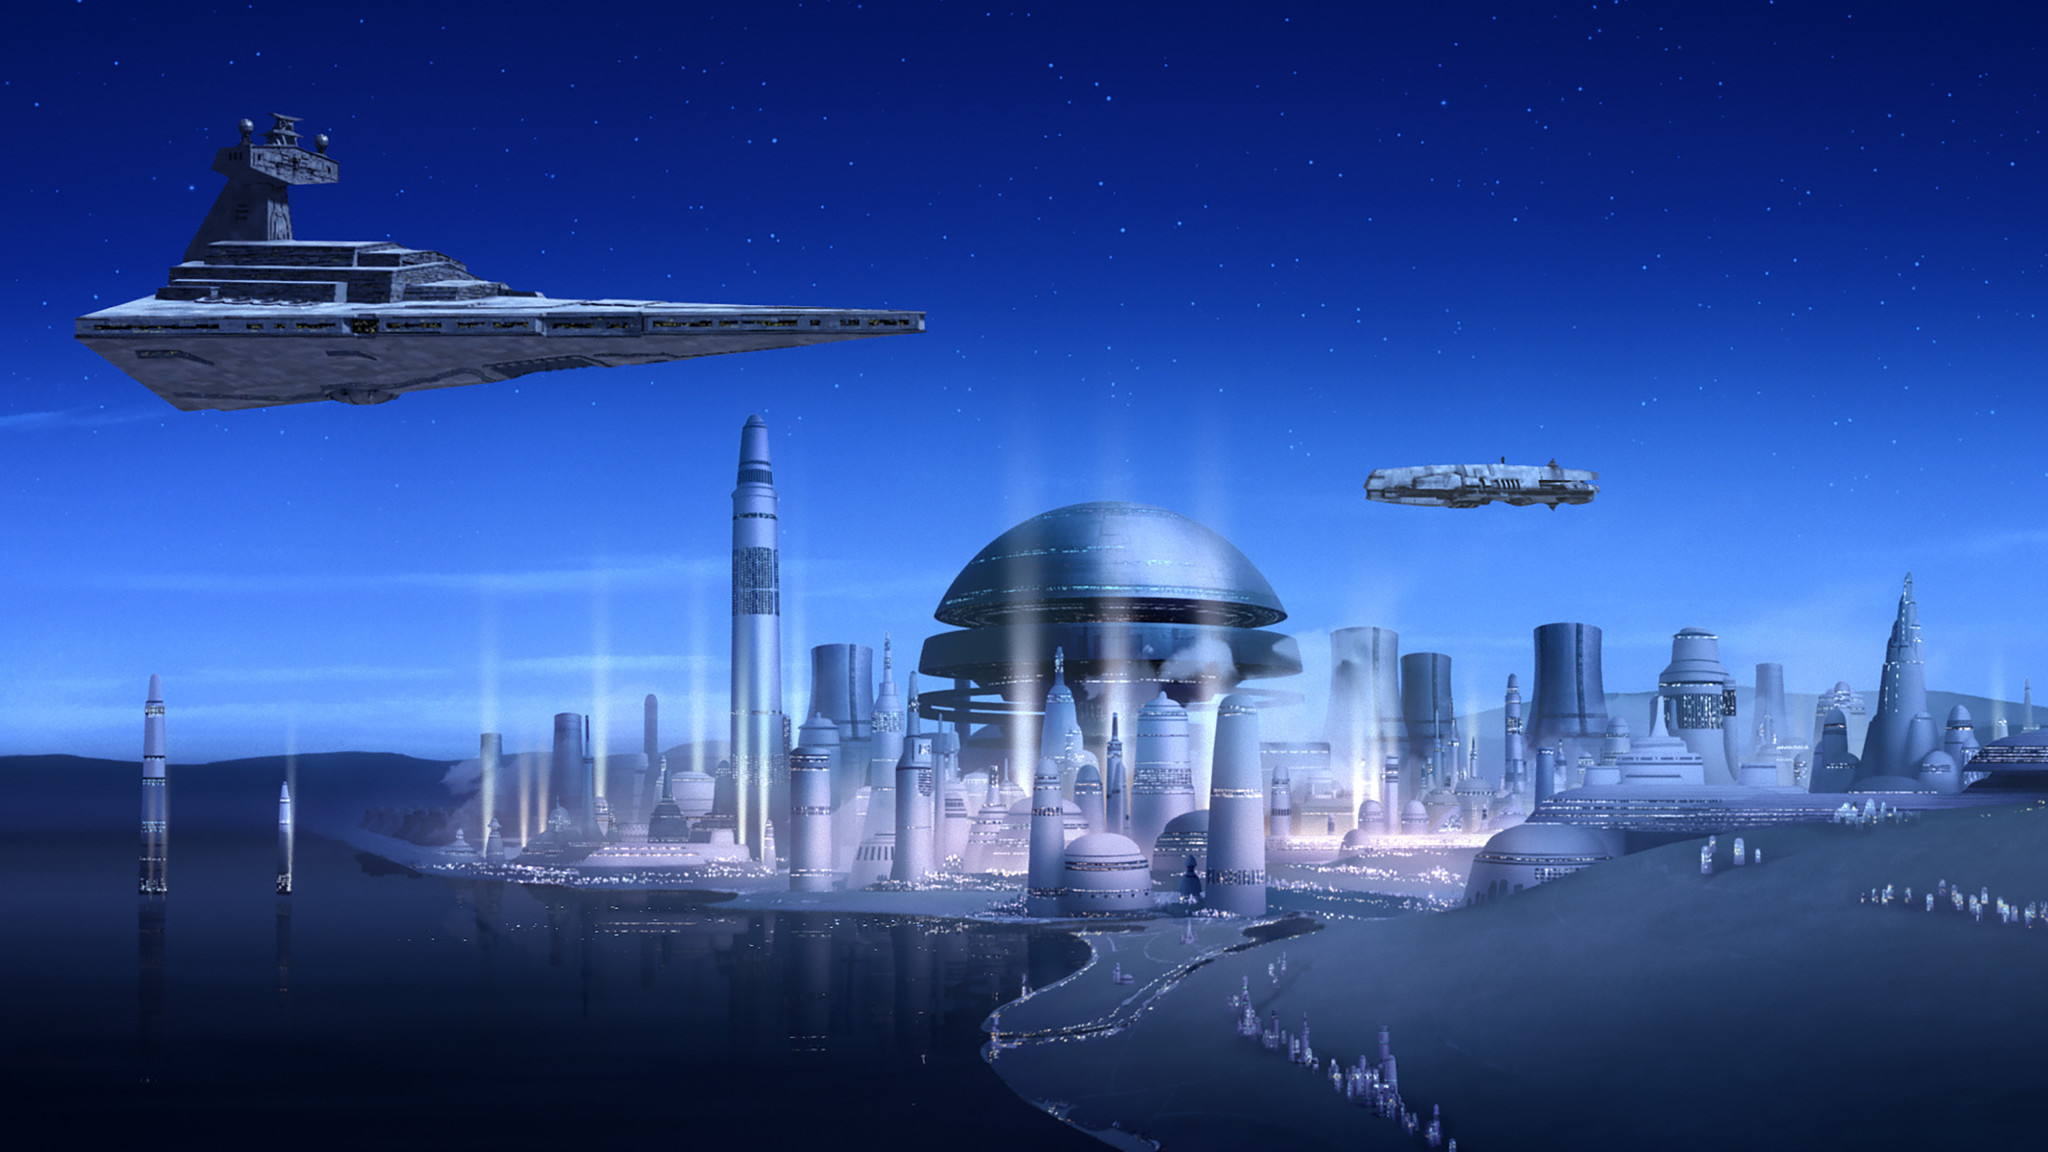 Explore More Wallpapers in the Star Wars Rebels Subcategory!